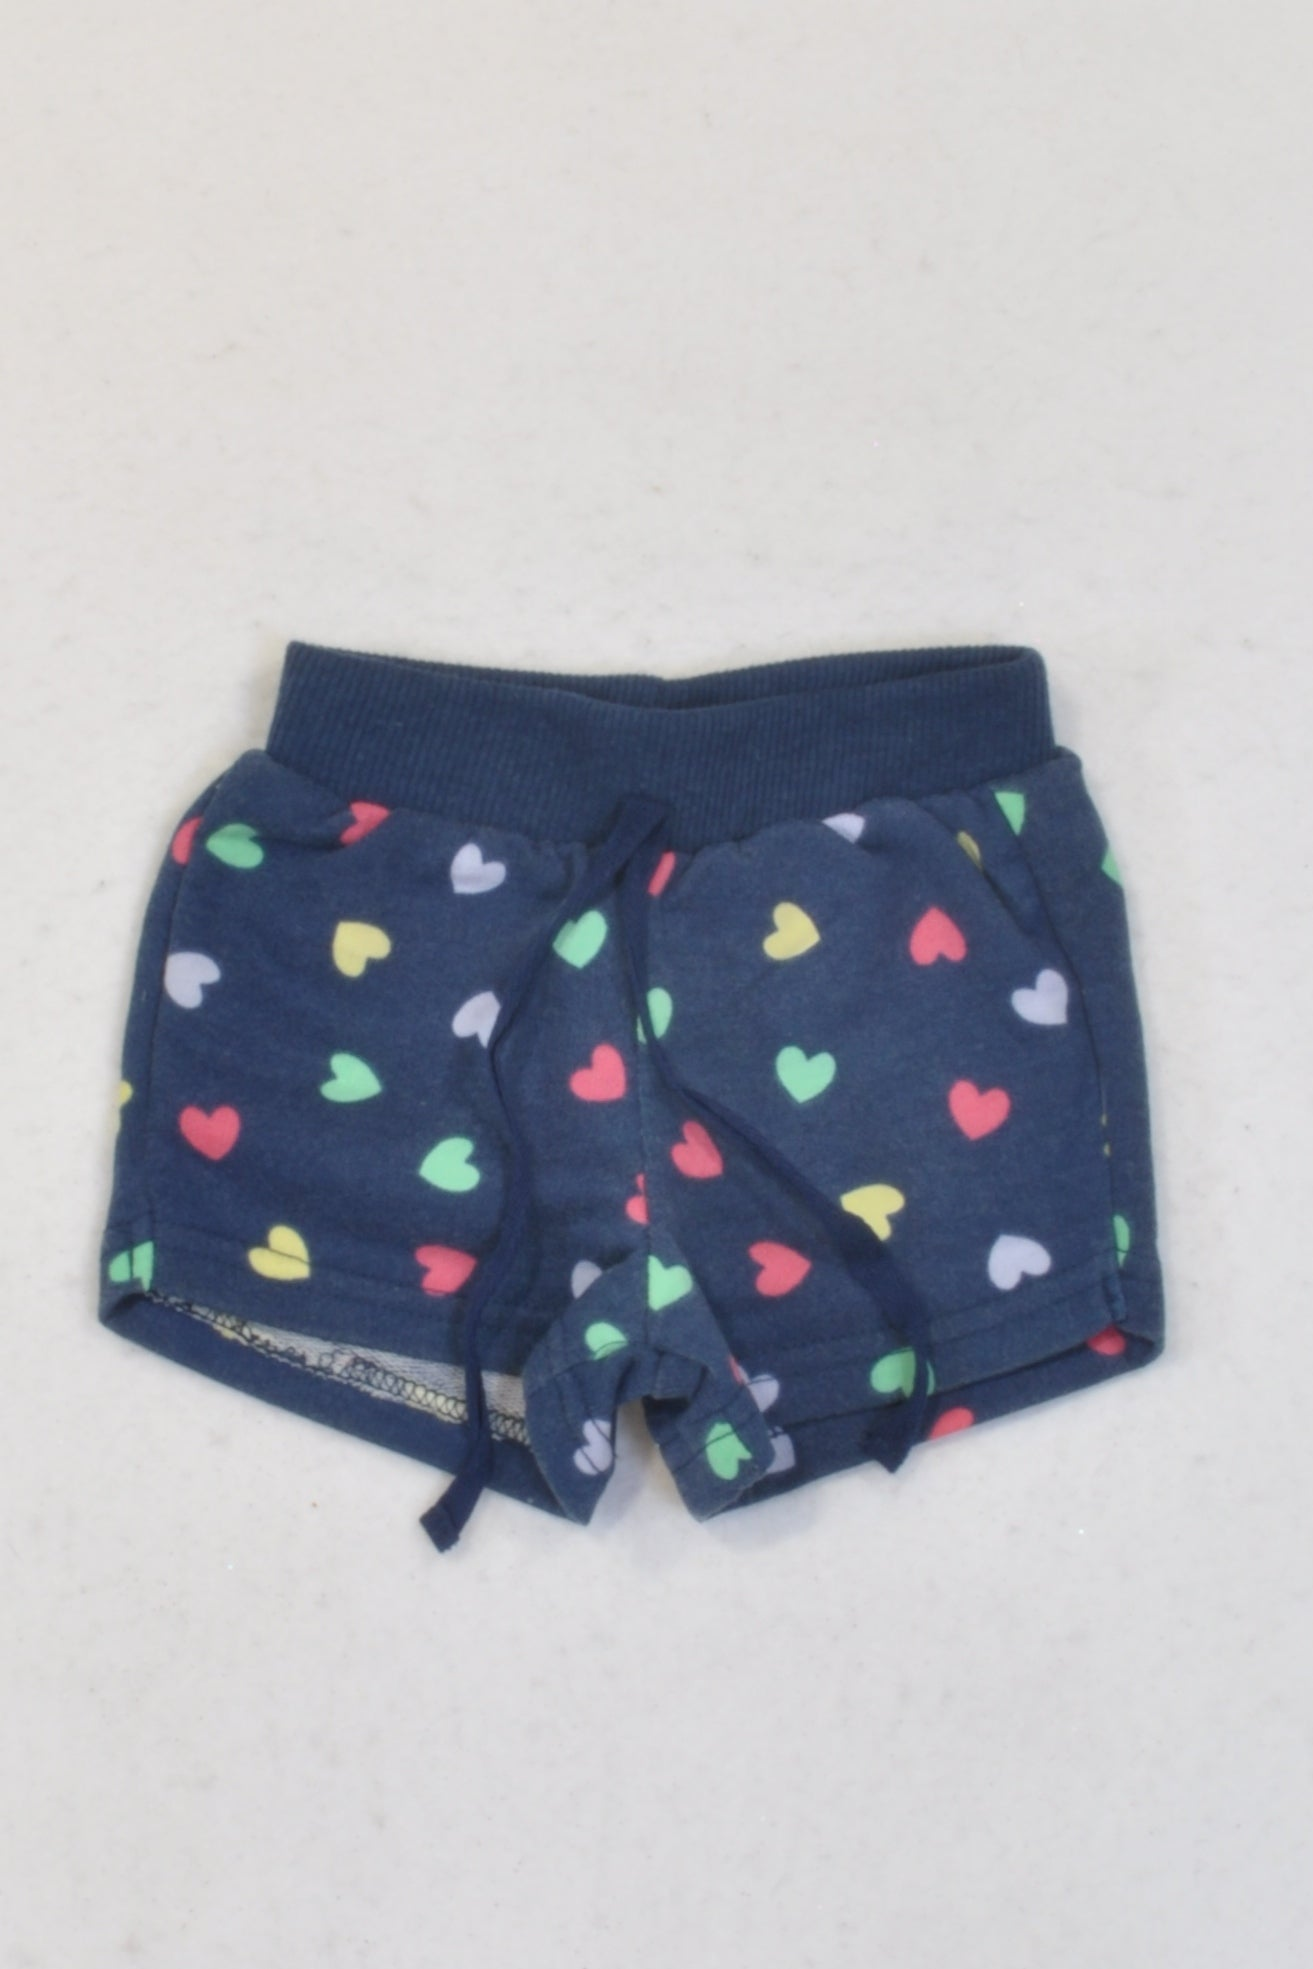 Ackermans Navy Hearts Banded Shorts Girls 3-6 months